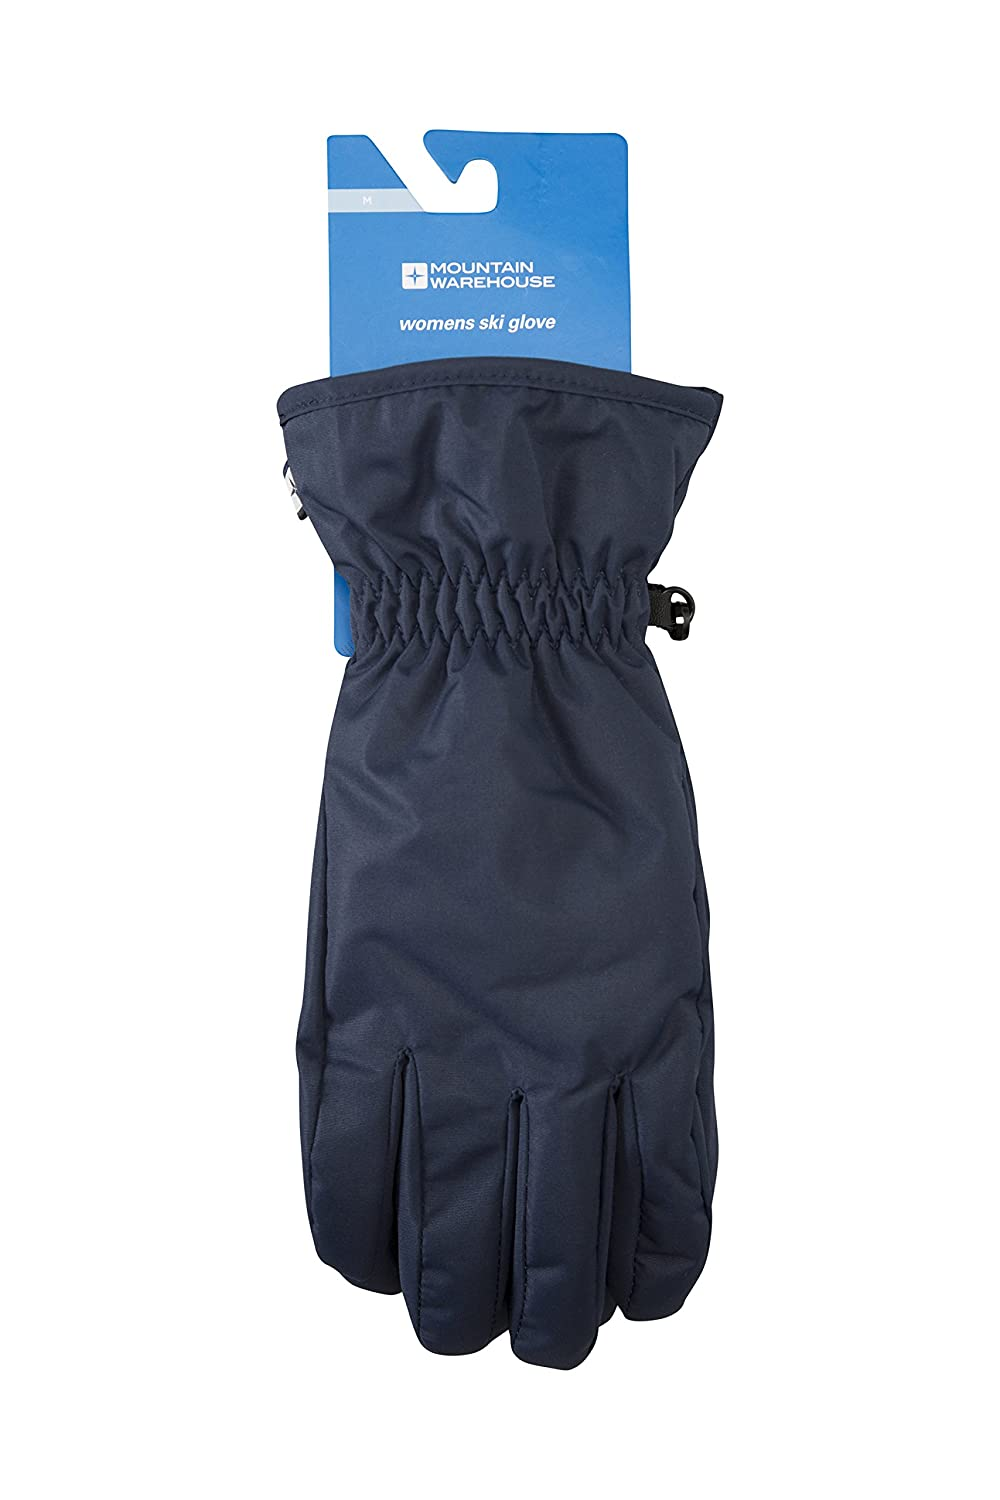 Mountain Warehouse Women's Ski Gloves - Snow Proof, Textured Palm with Adjustable Cuffs & Fleece Lined - Insulated & Fleece Lined for Extra Warmth